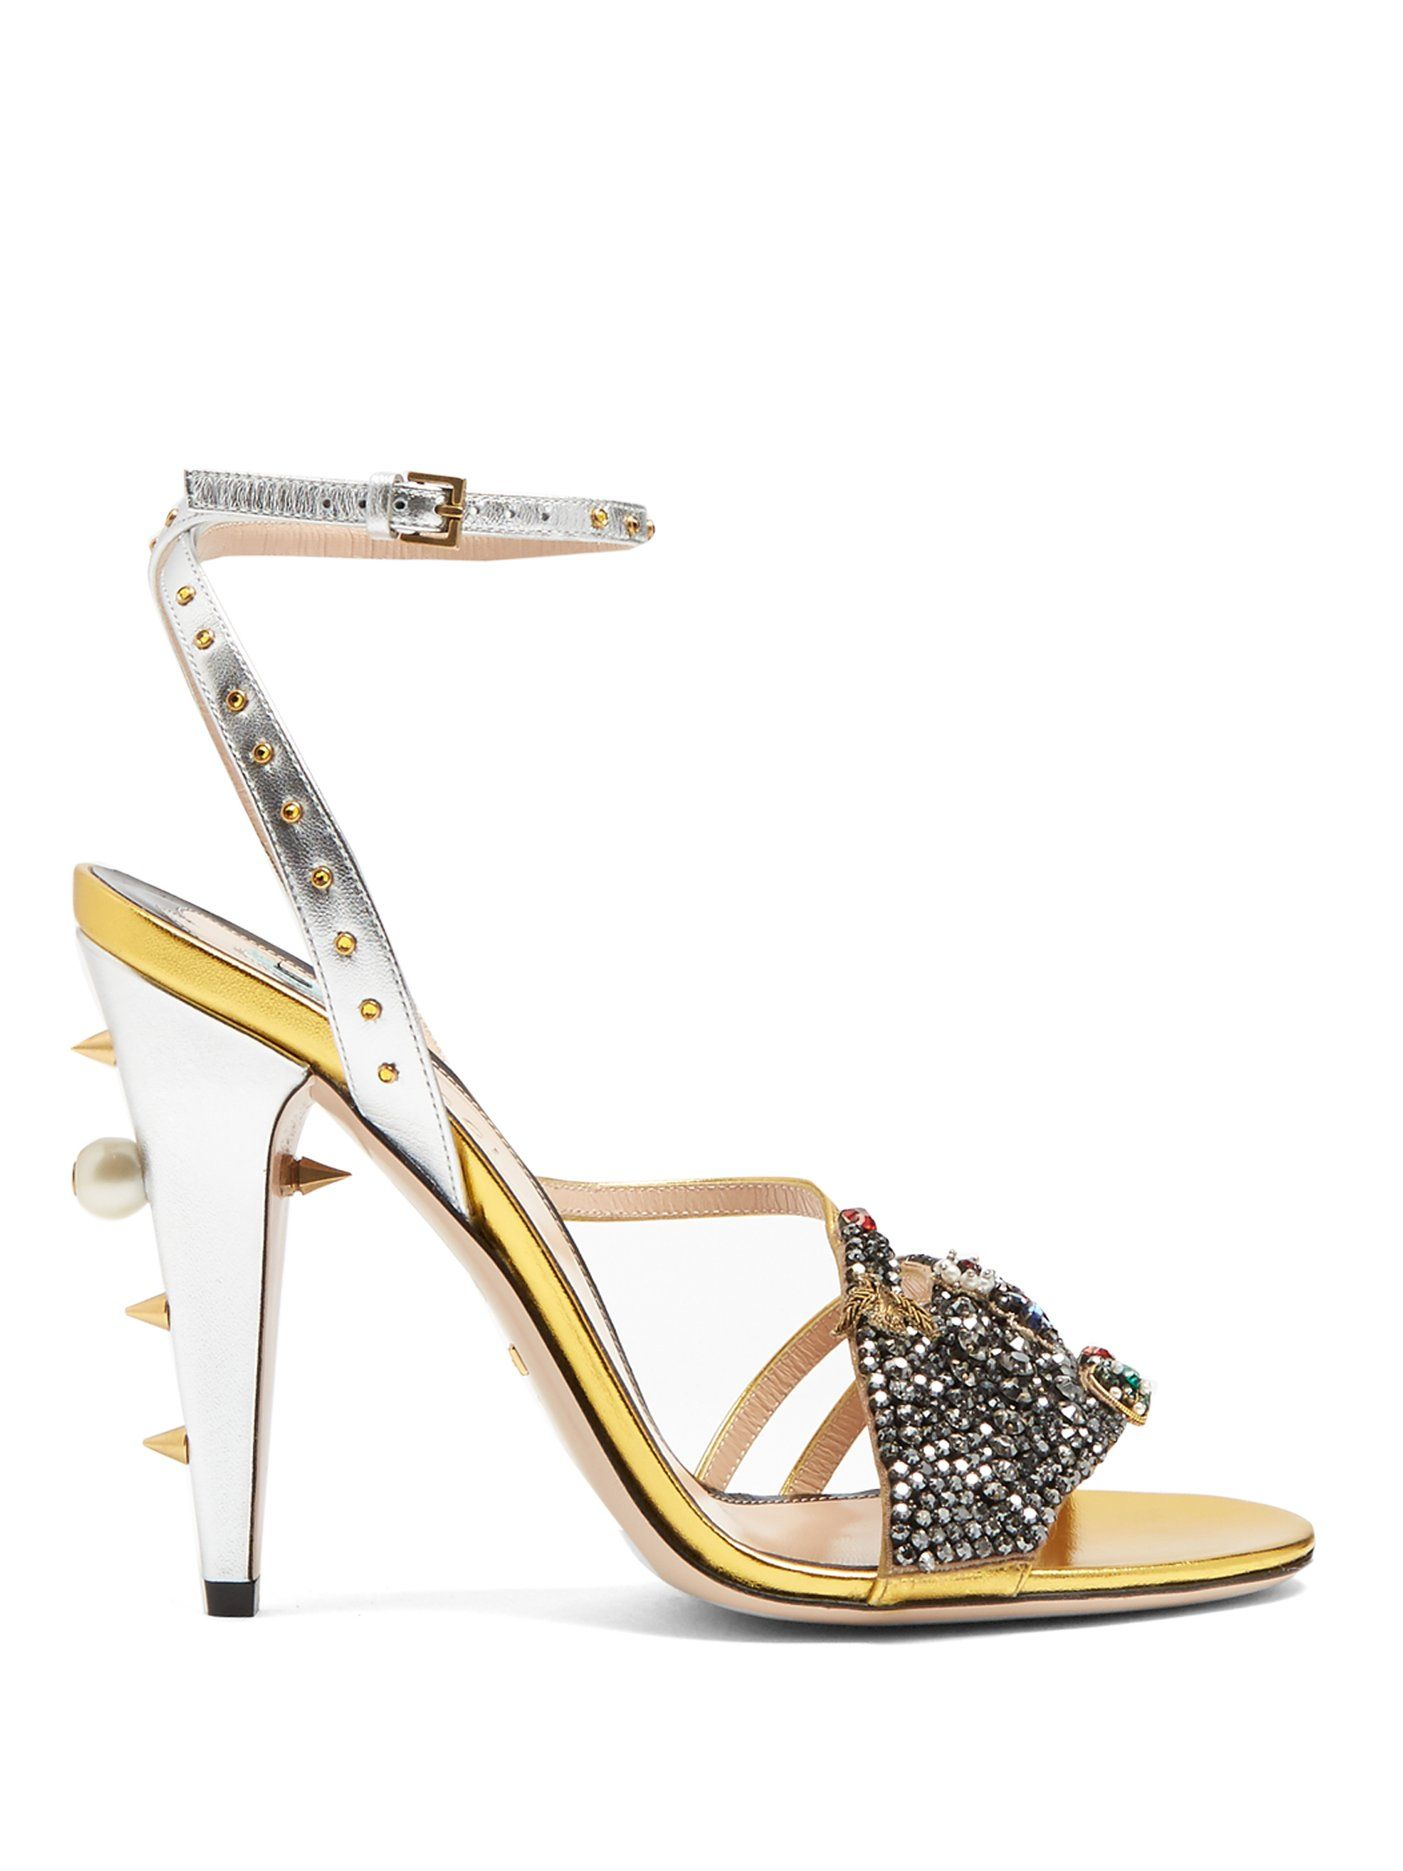 2097a73faed Click here to buy Gucci Wangy embellished leather sandals at  MATCHESFASHION.COM